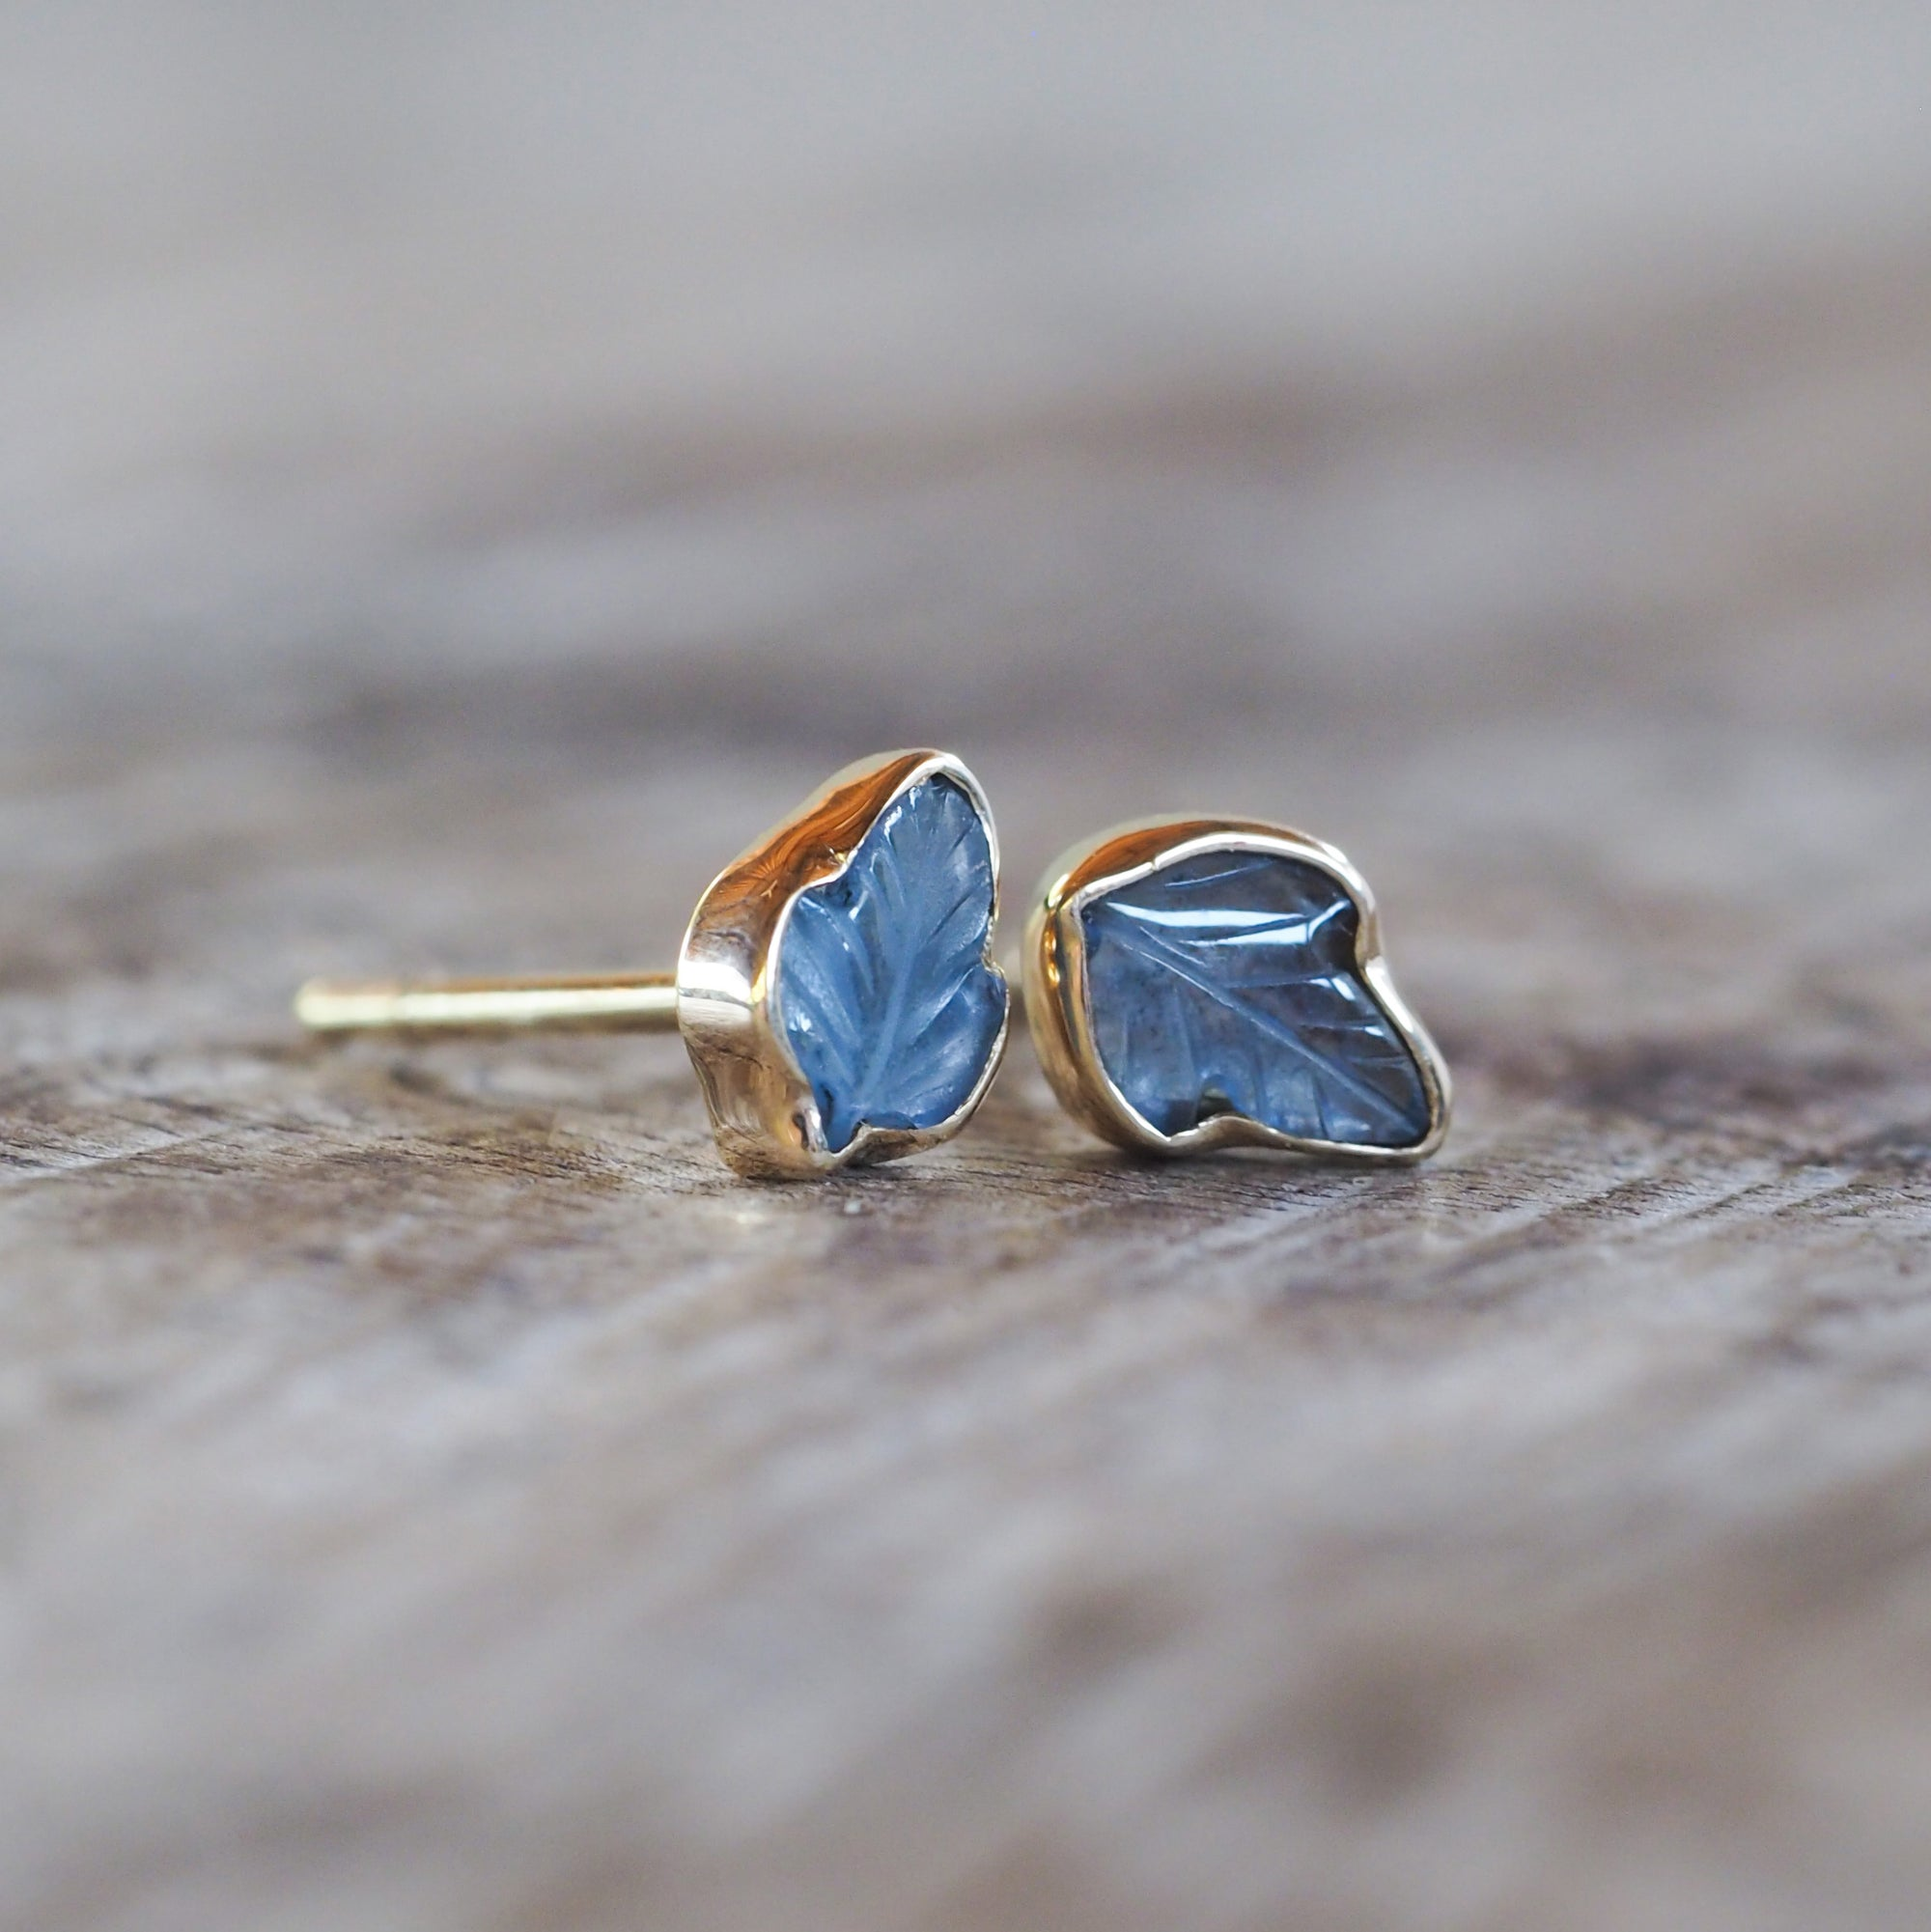 AA ATRI Yogo Sapphire Leaf Earrings - Gardens of the Sun Jewelry